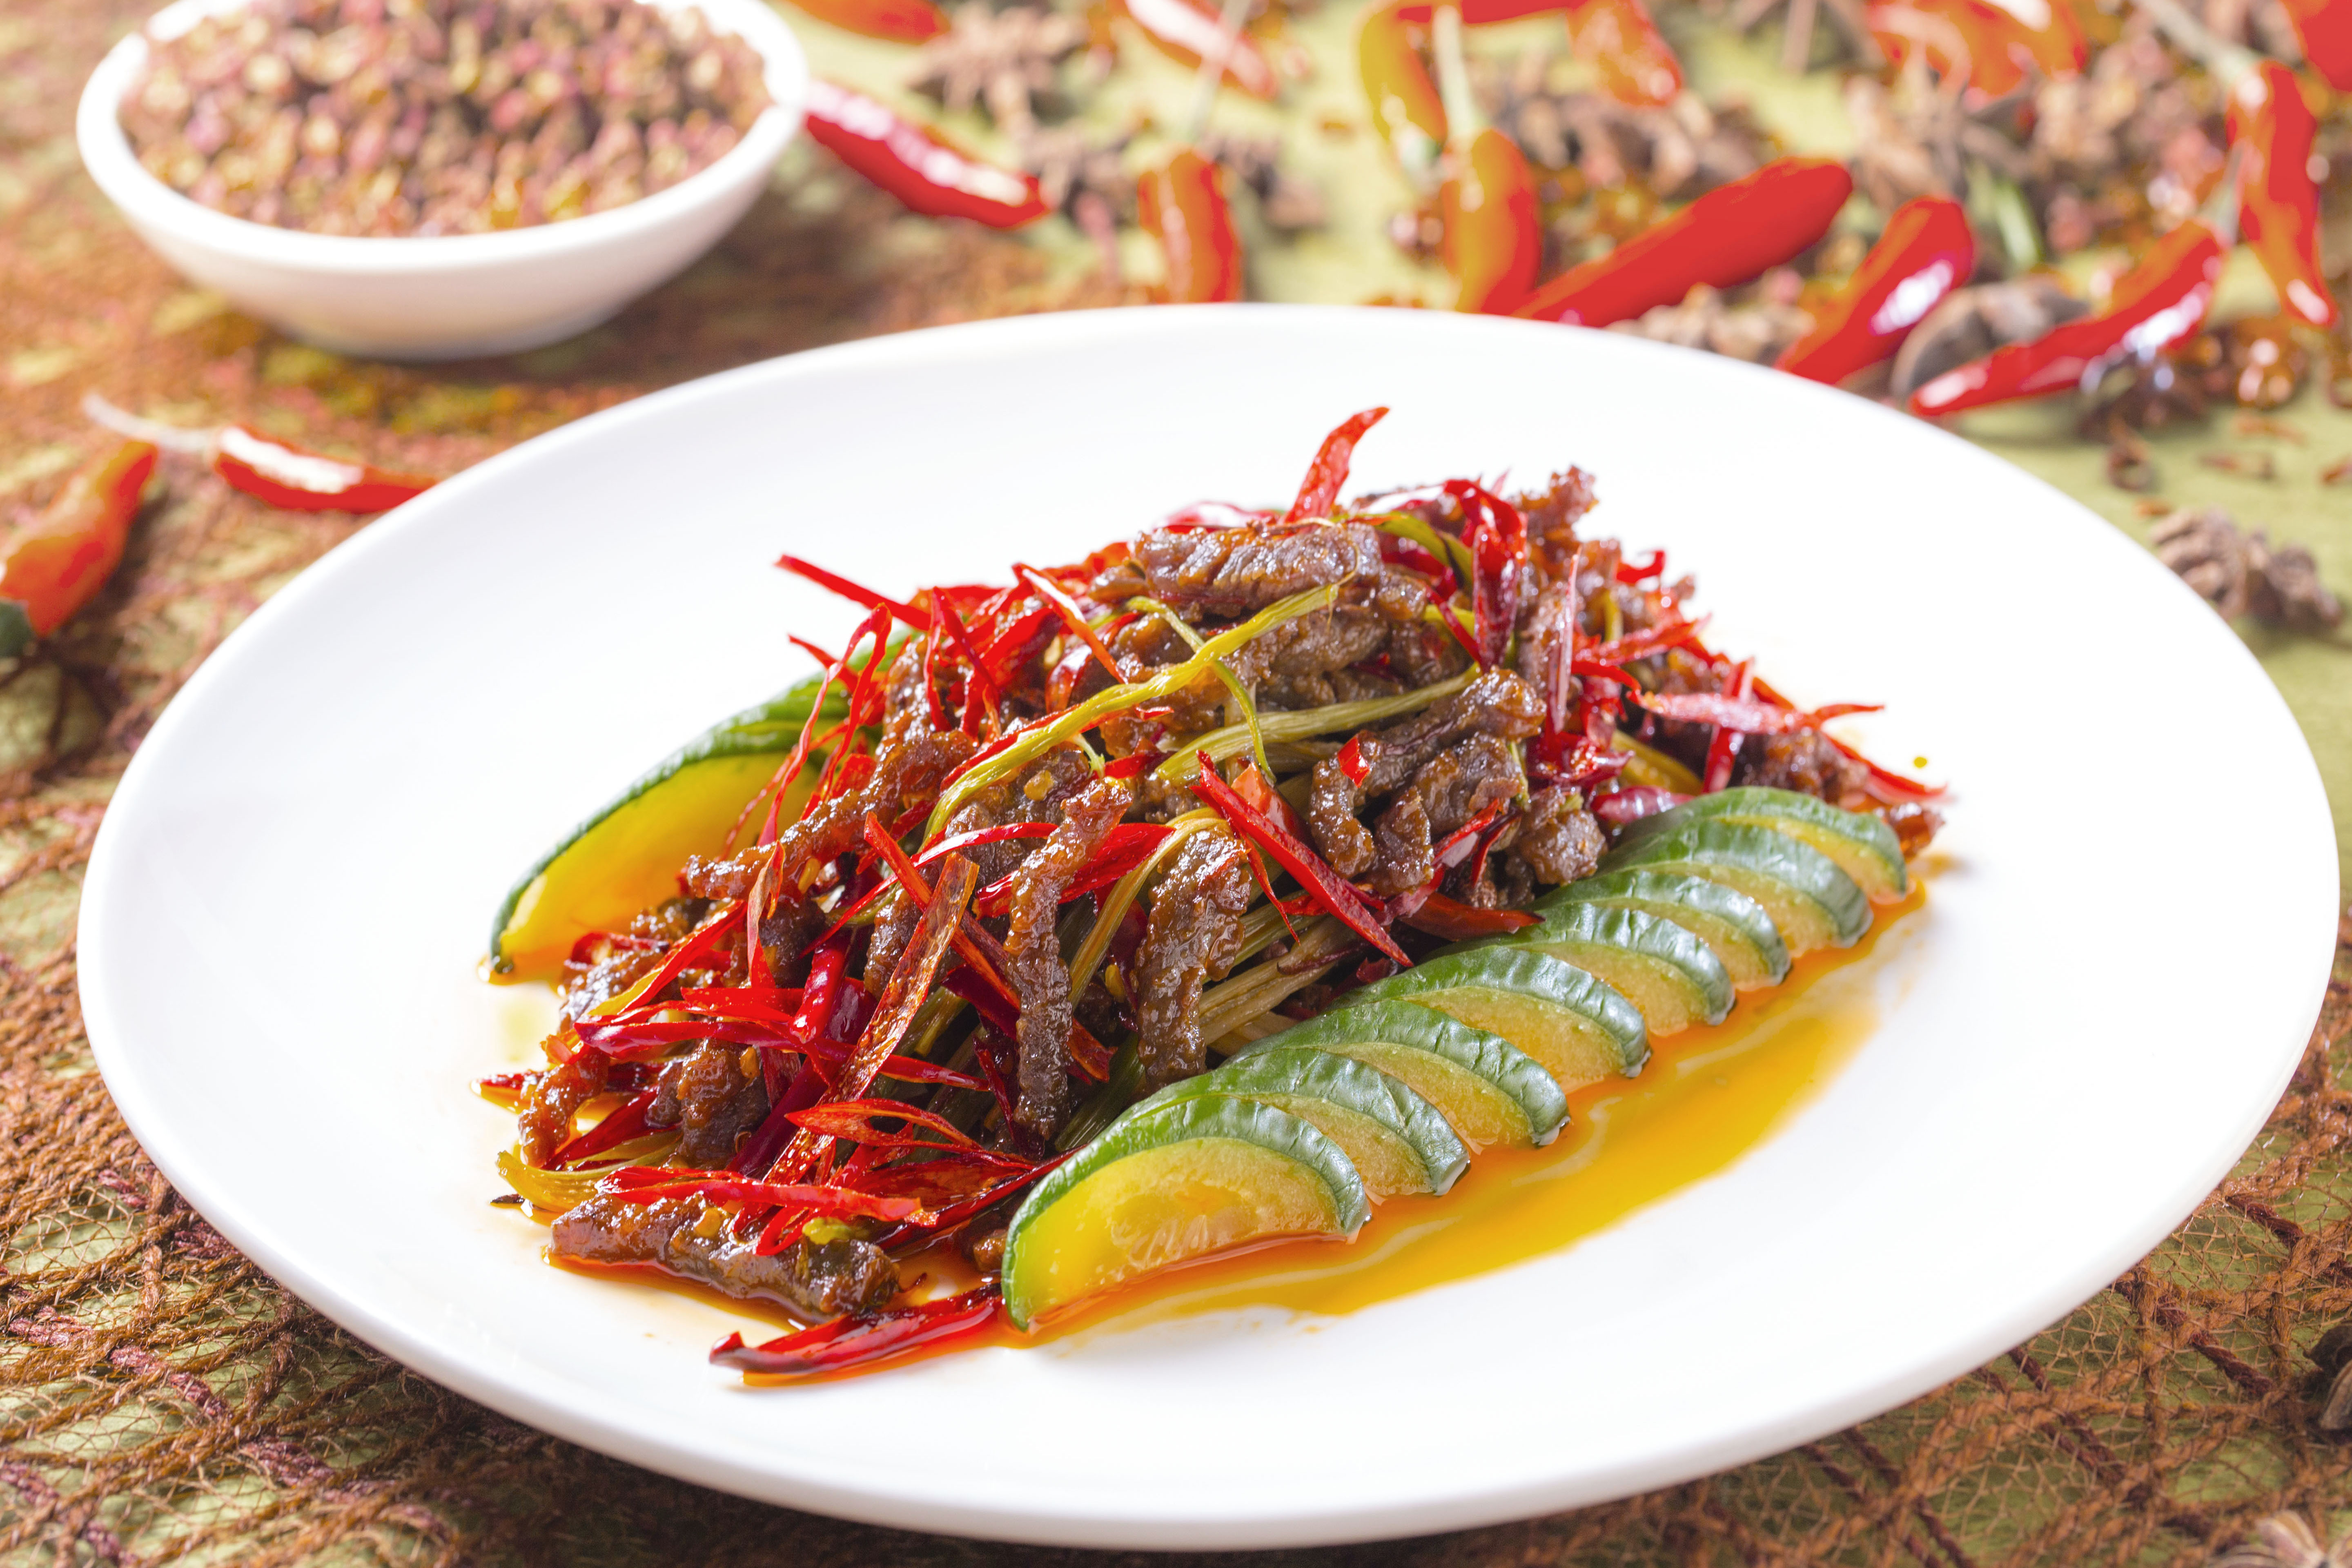 Sauteed Shredded Beef with Bamboo Shoot in Chili Sauce